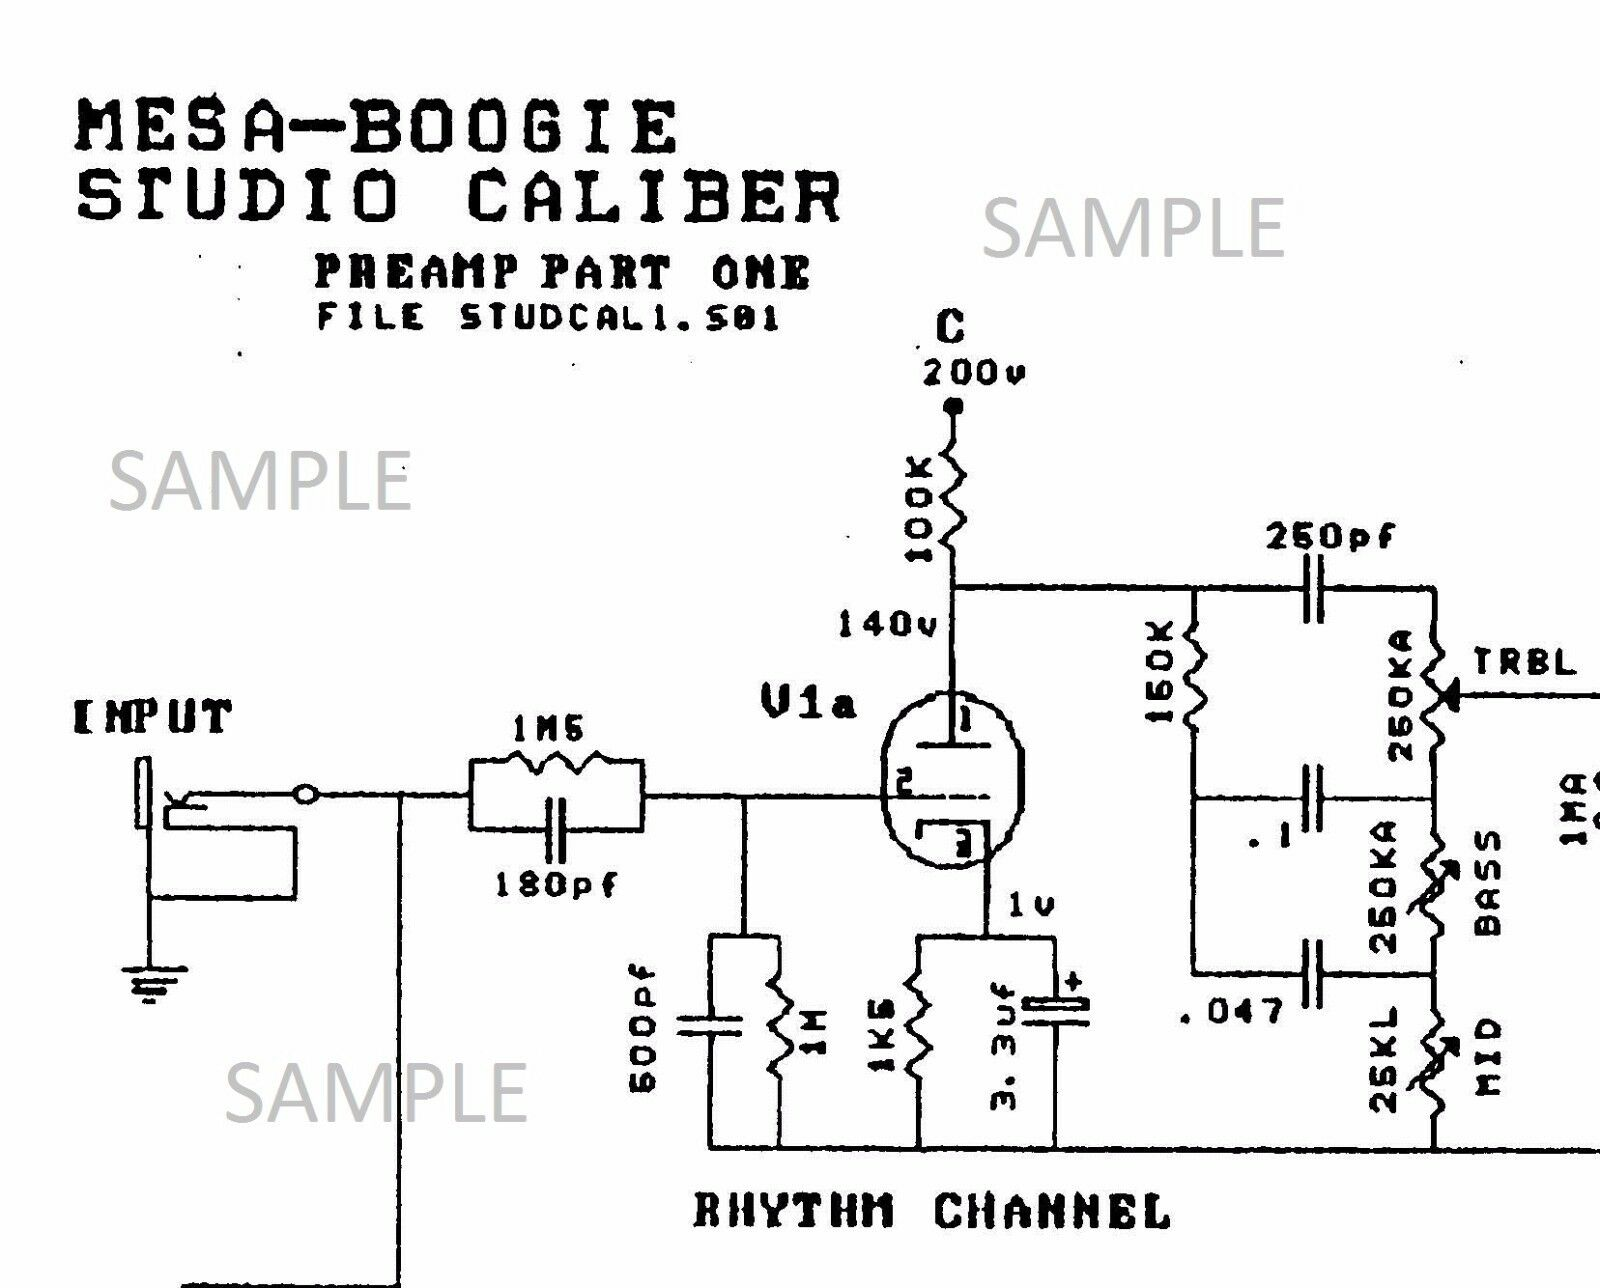 Mesa Boogie Studio Caliber Dc2 Tube Amplifier Electronic Circuit Marshall Mg Cab Wiring Diagram Schemat 1 Of 1free Shipping See More